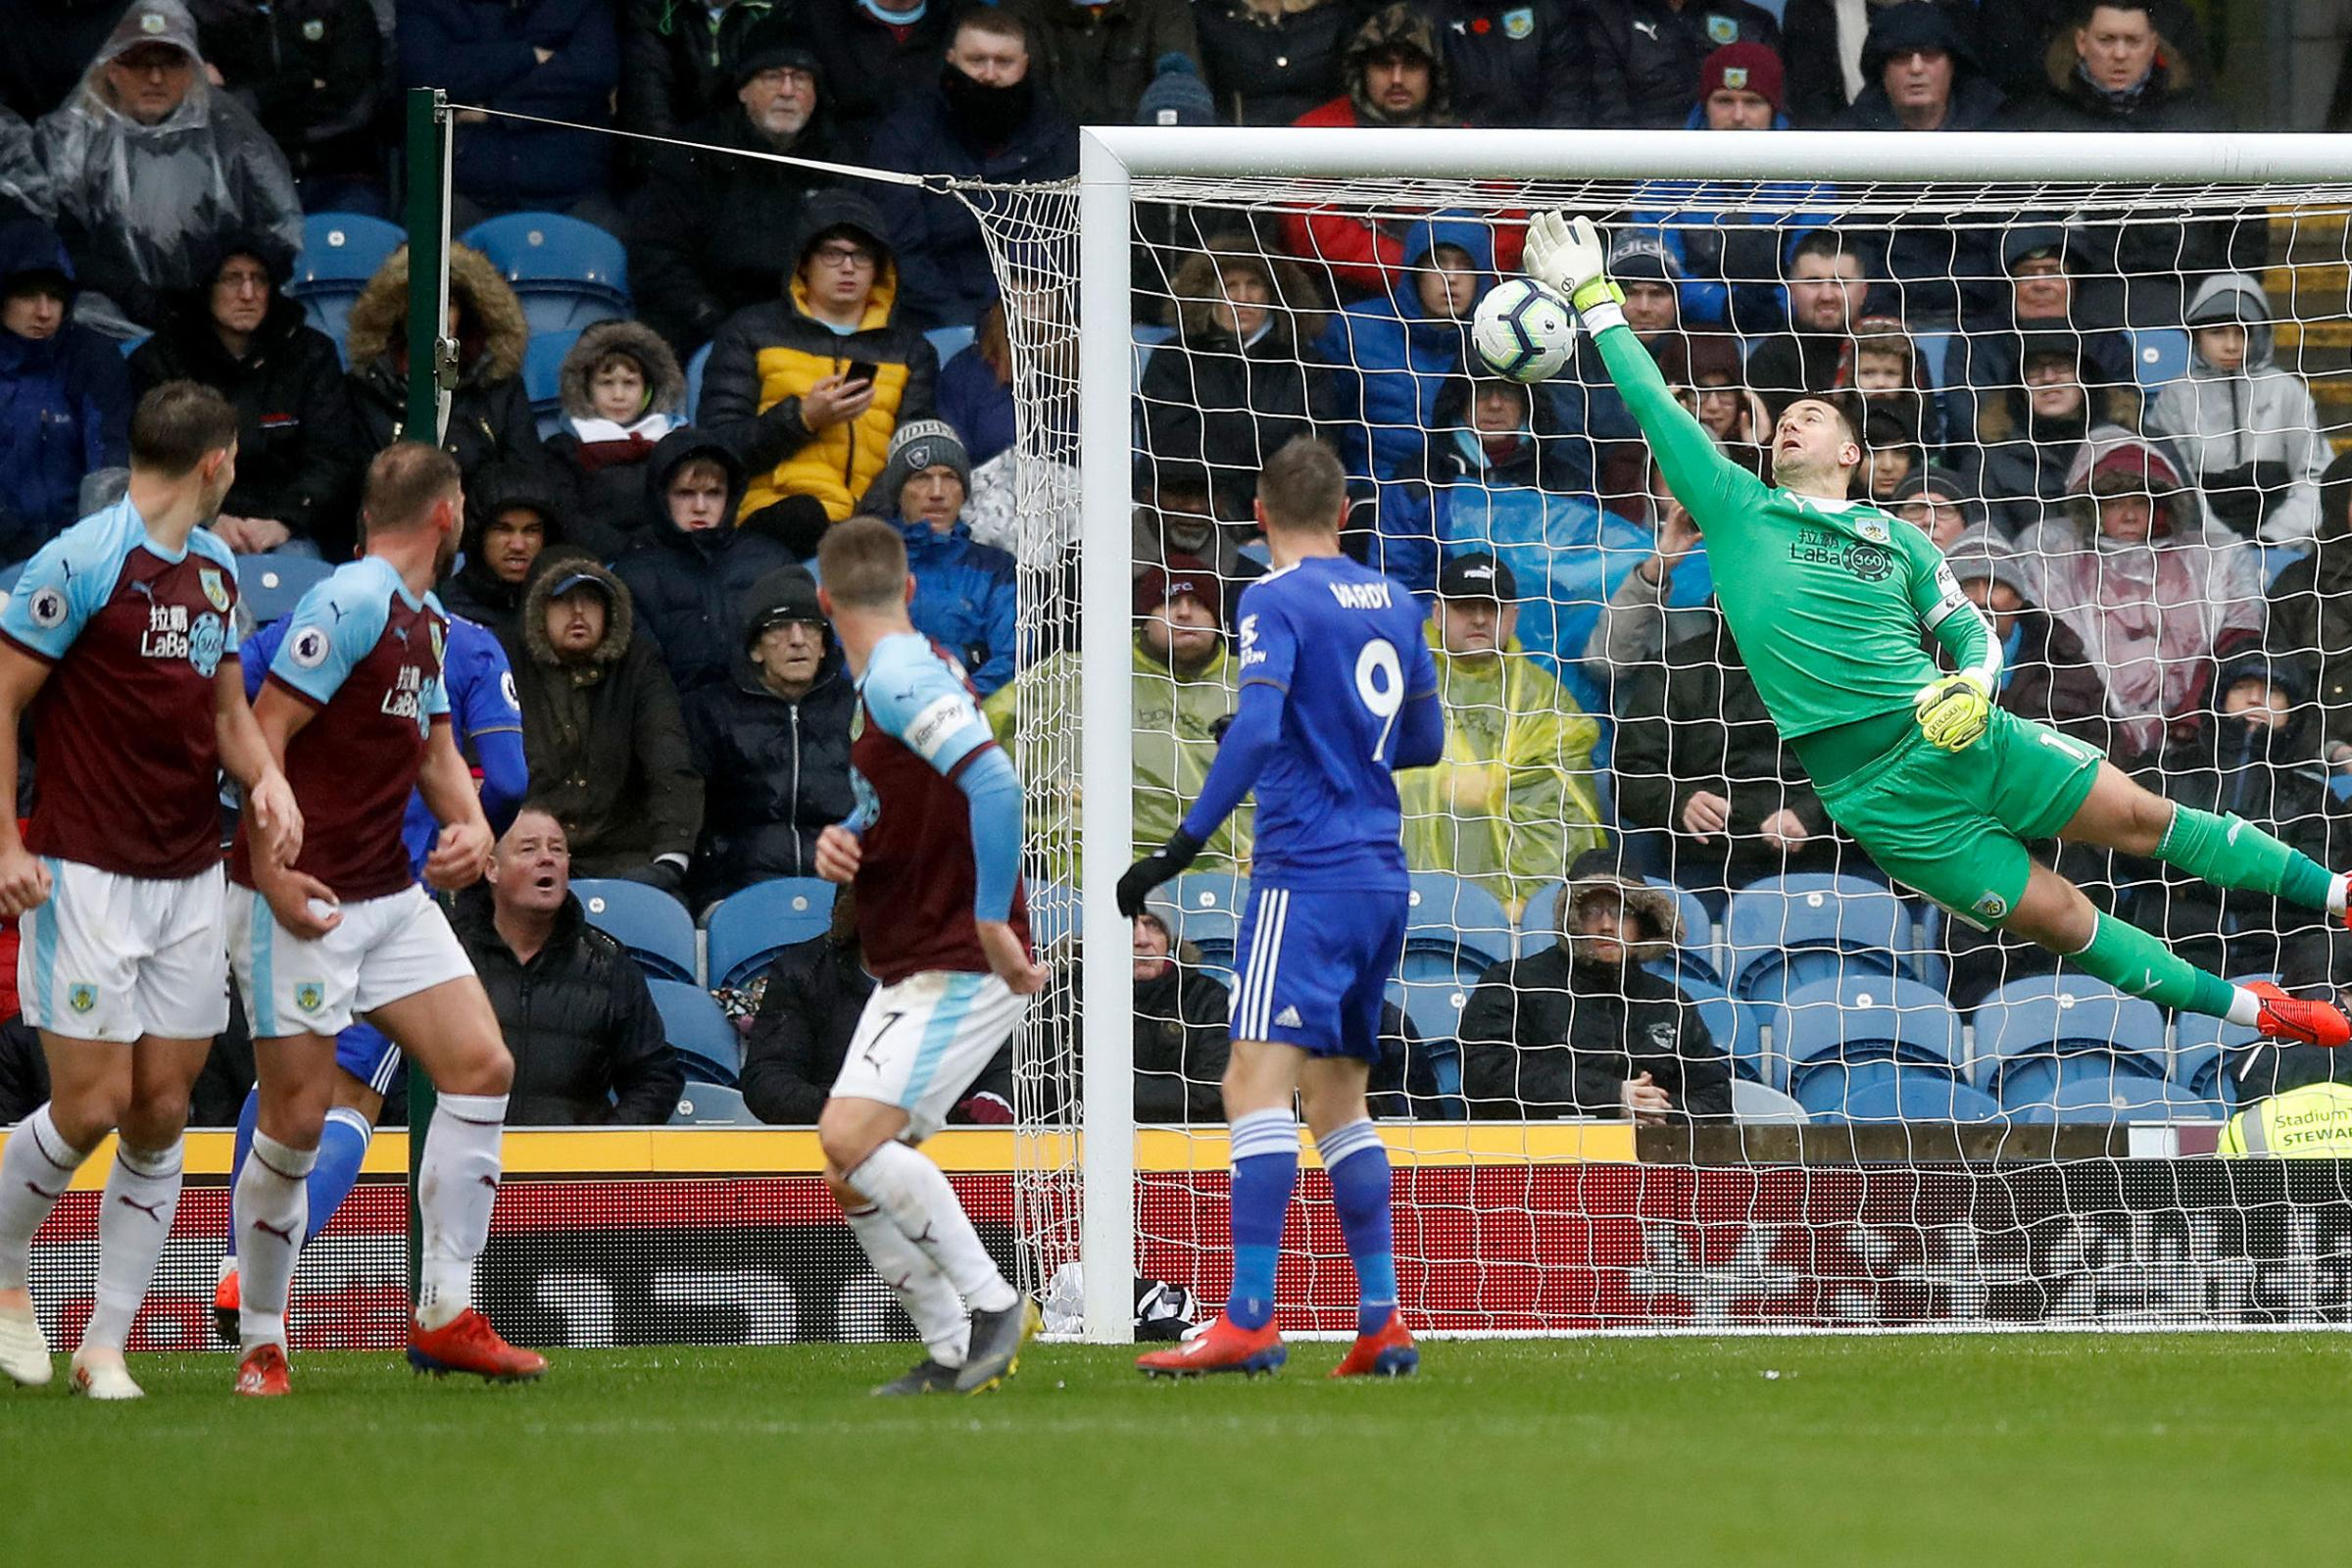 MATCH REPORT: Burnley 1 - 2 Leicester City